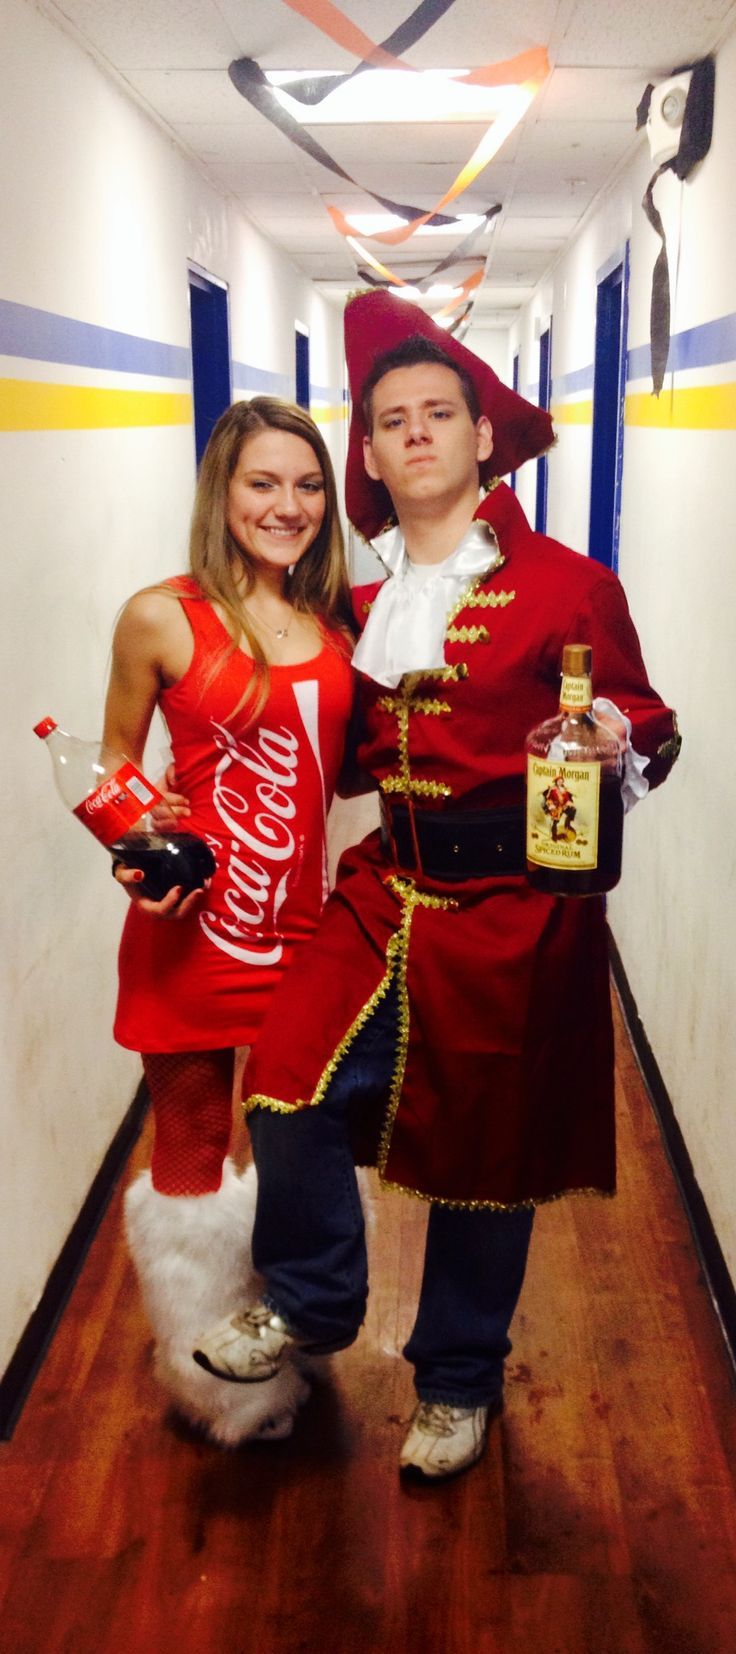 captain morgan and coke couples outfit#famous halloween couples